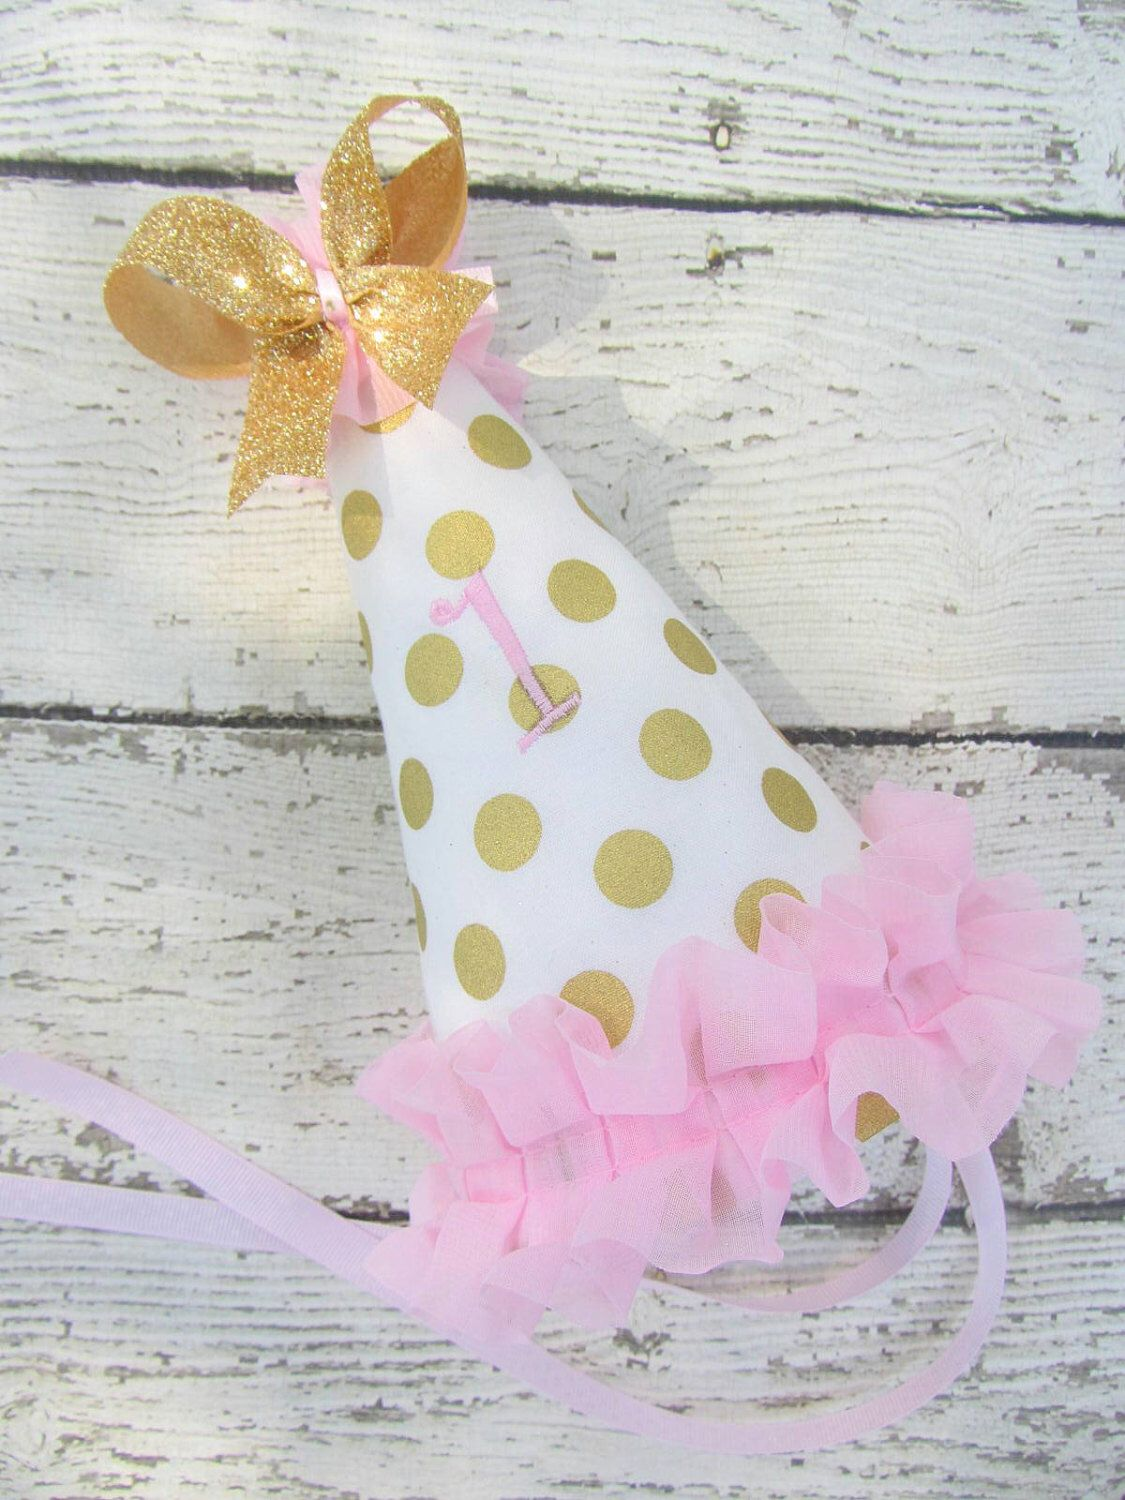 Gold Polka Dot 1st Birthday Hat with Pink Ruffle and Embroidered One and Glitter Bow Photo Prop by avannabelbaby on Etsy https://www.etsy.com/listing/250206637/gold-polka-dot-1st-birthday-hat-with